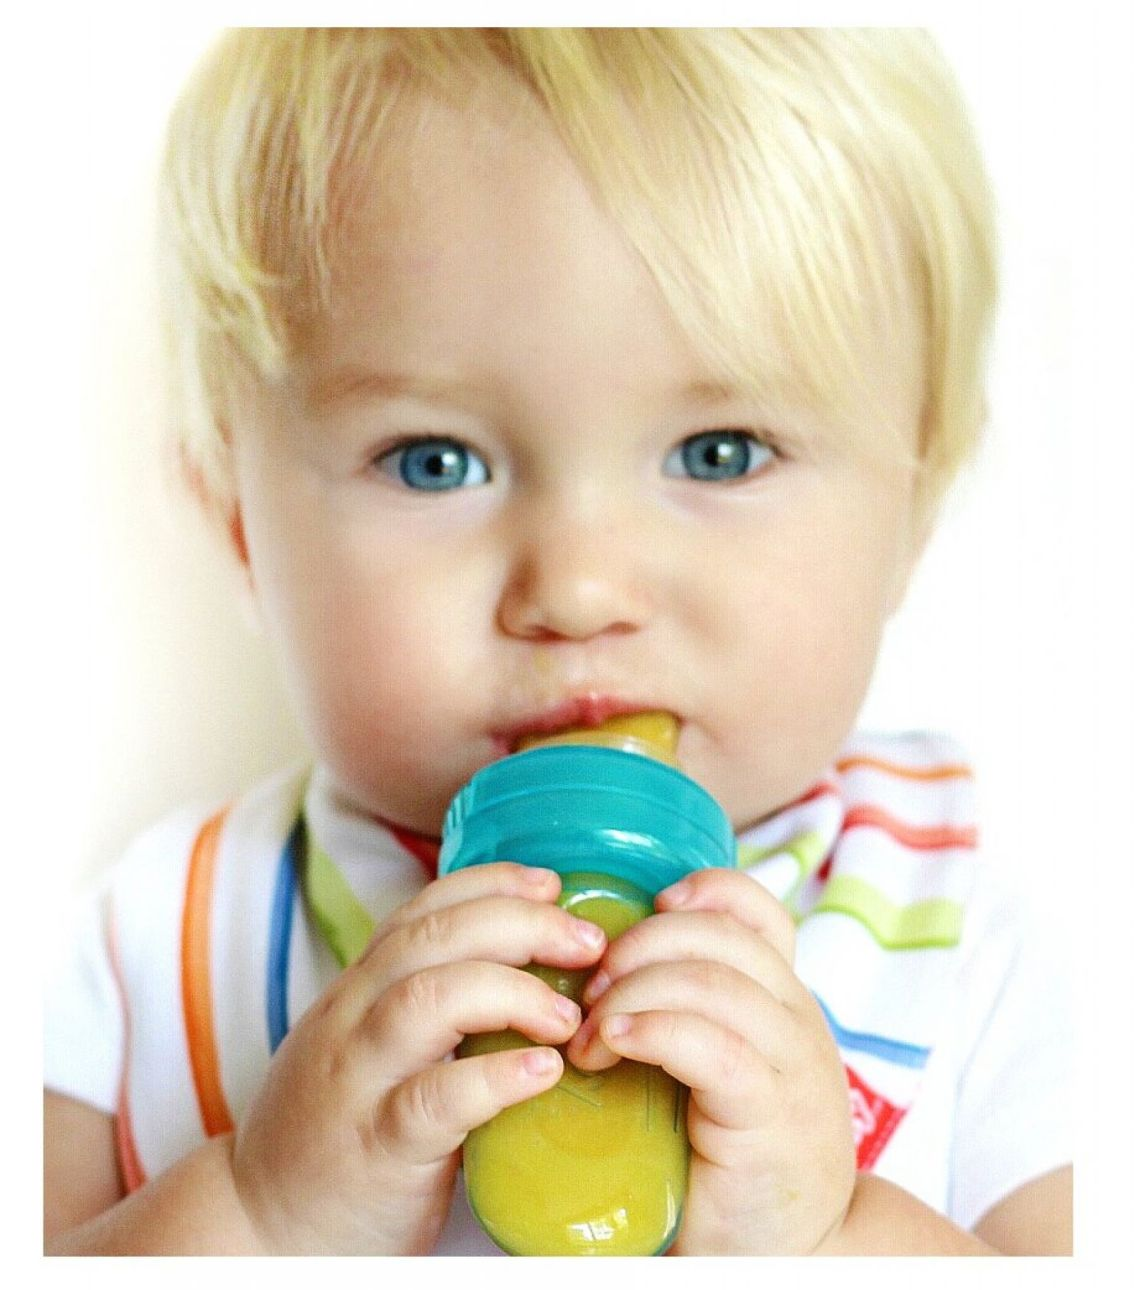 Amazon.com : Vbestlife Silicone Baby Food Squeezable Bottle, Include 2 kinds of nipples, 100% safe medical silicone, 4 + Months, 9 oz (250 ml)- Green : Baby